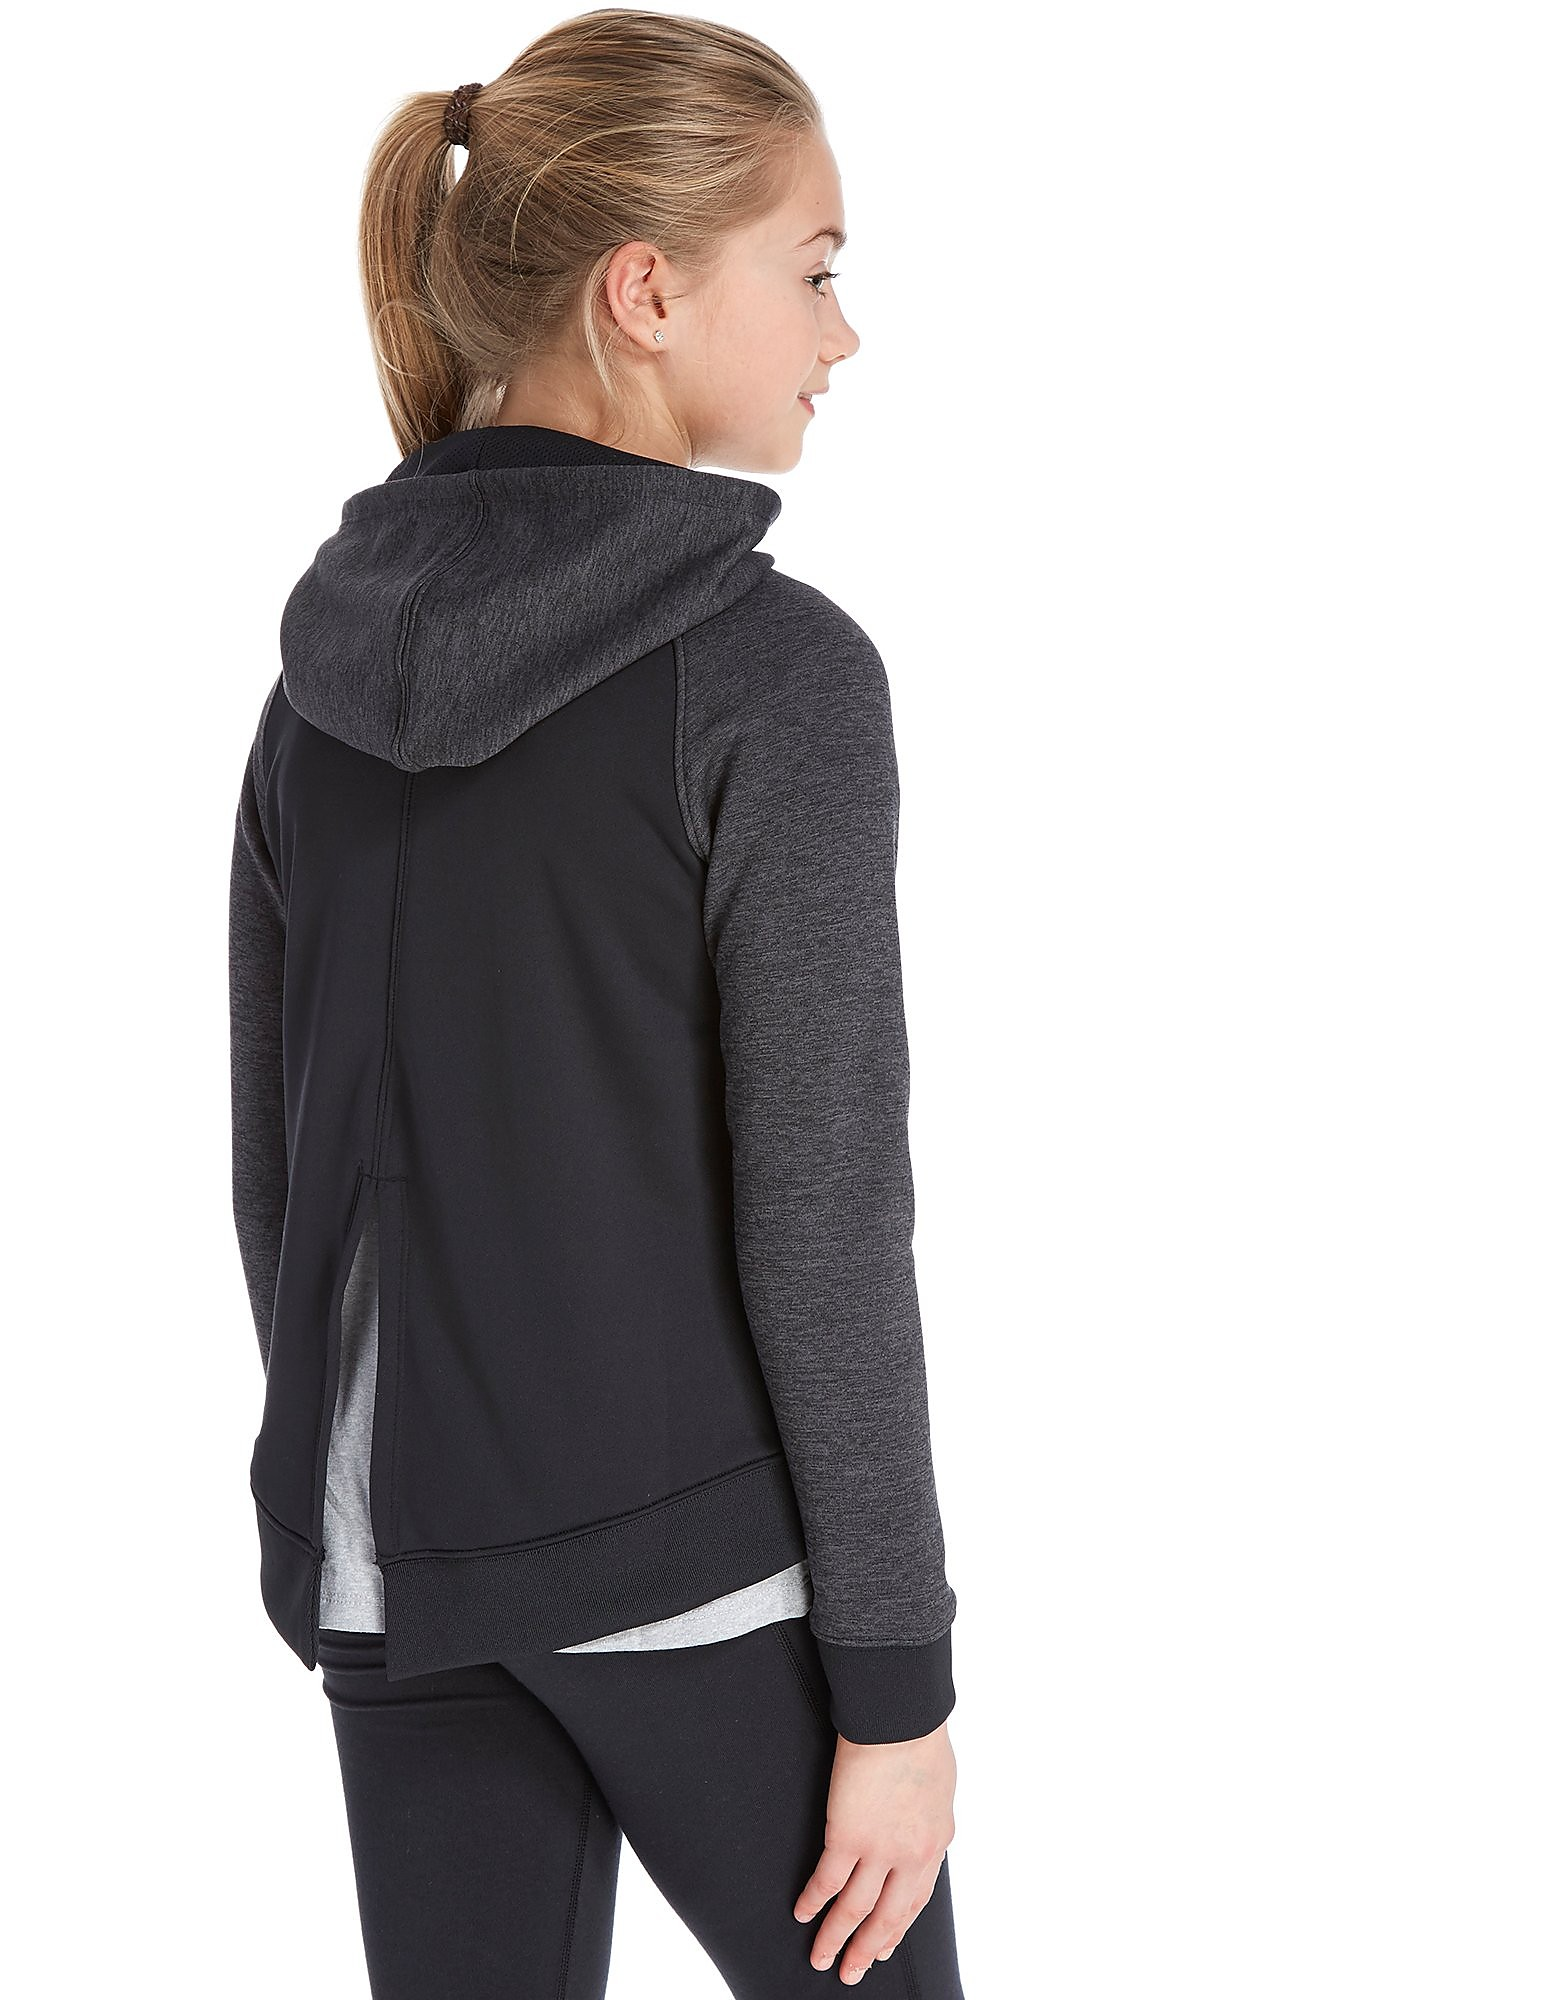 Under Armour Girls' FT Hoodie Junior